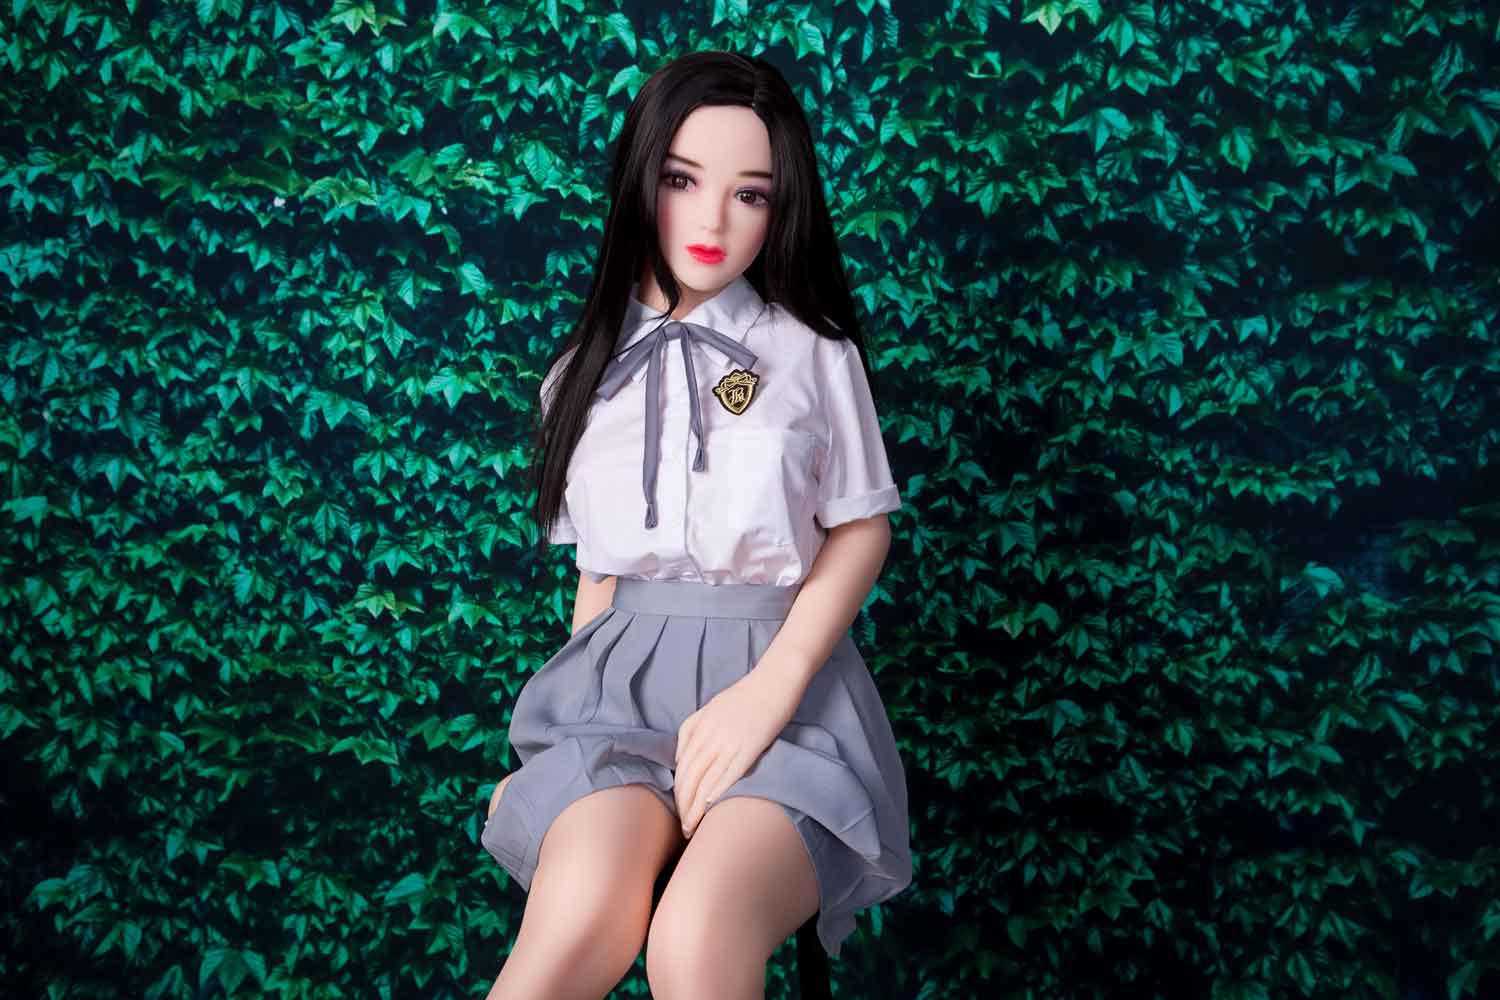 Mini sex doll with hands on skirt